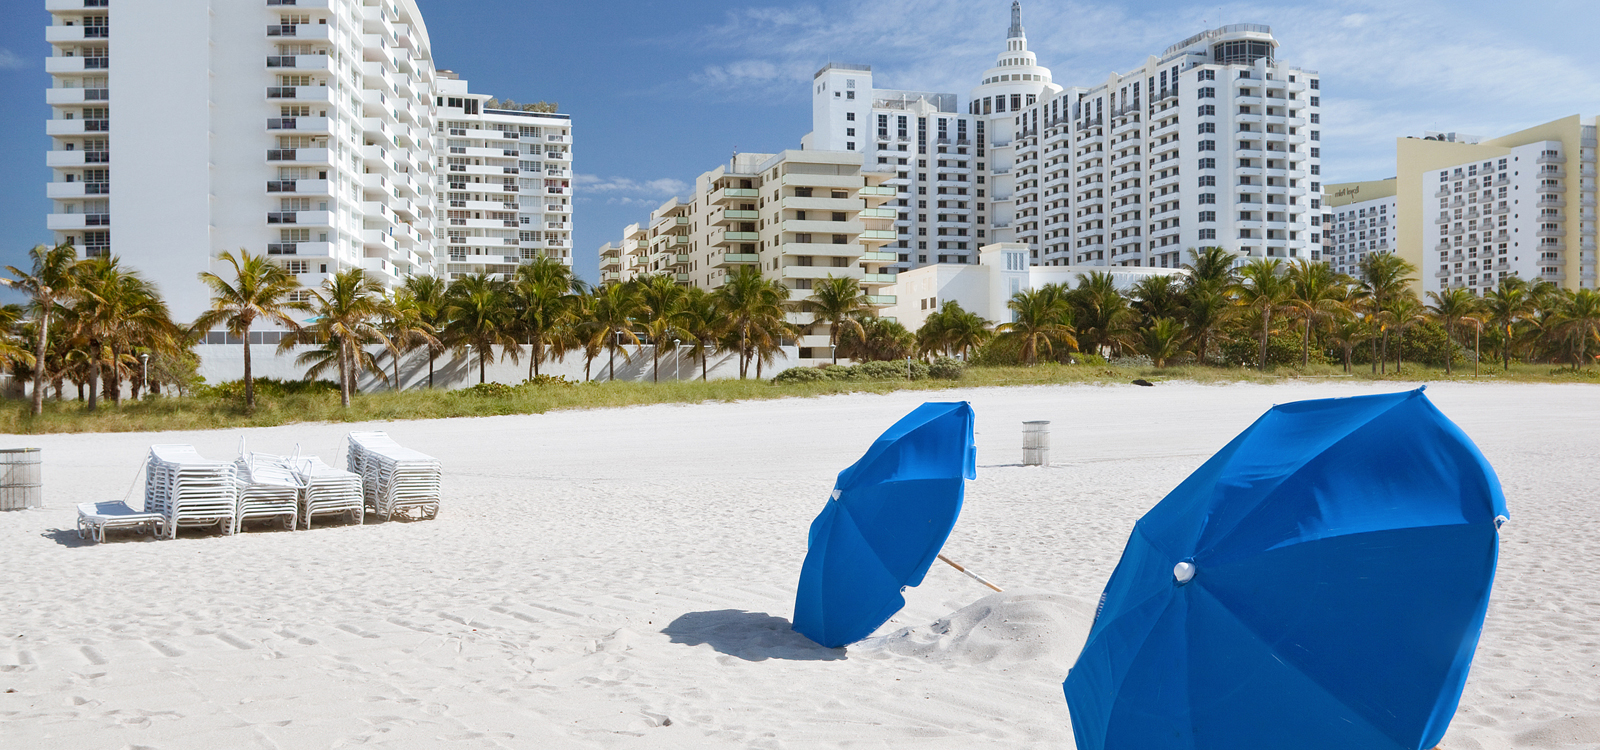 EXPERIENCE THE SOUTH BEACH NIGHTLIFE AND WHITE SAND BEACHES